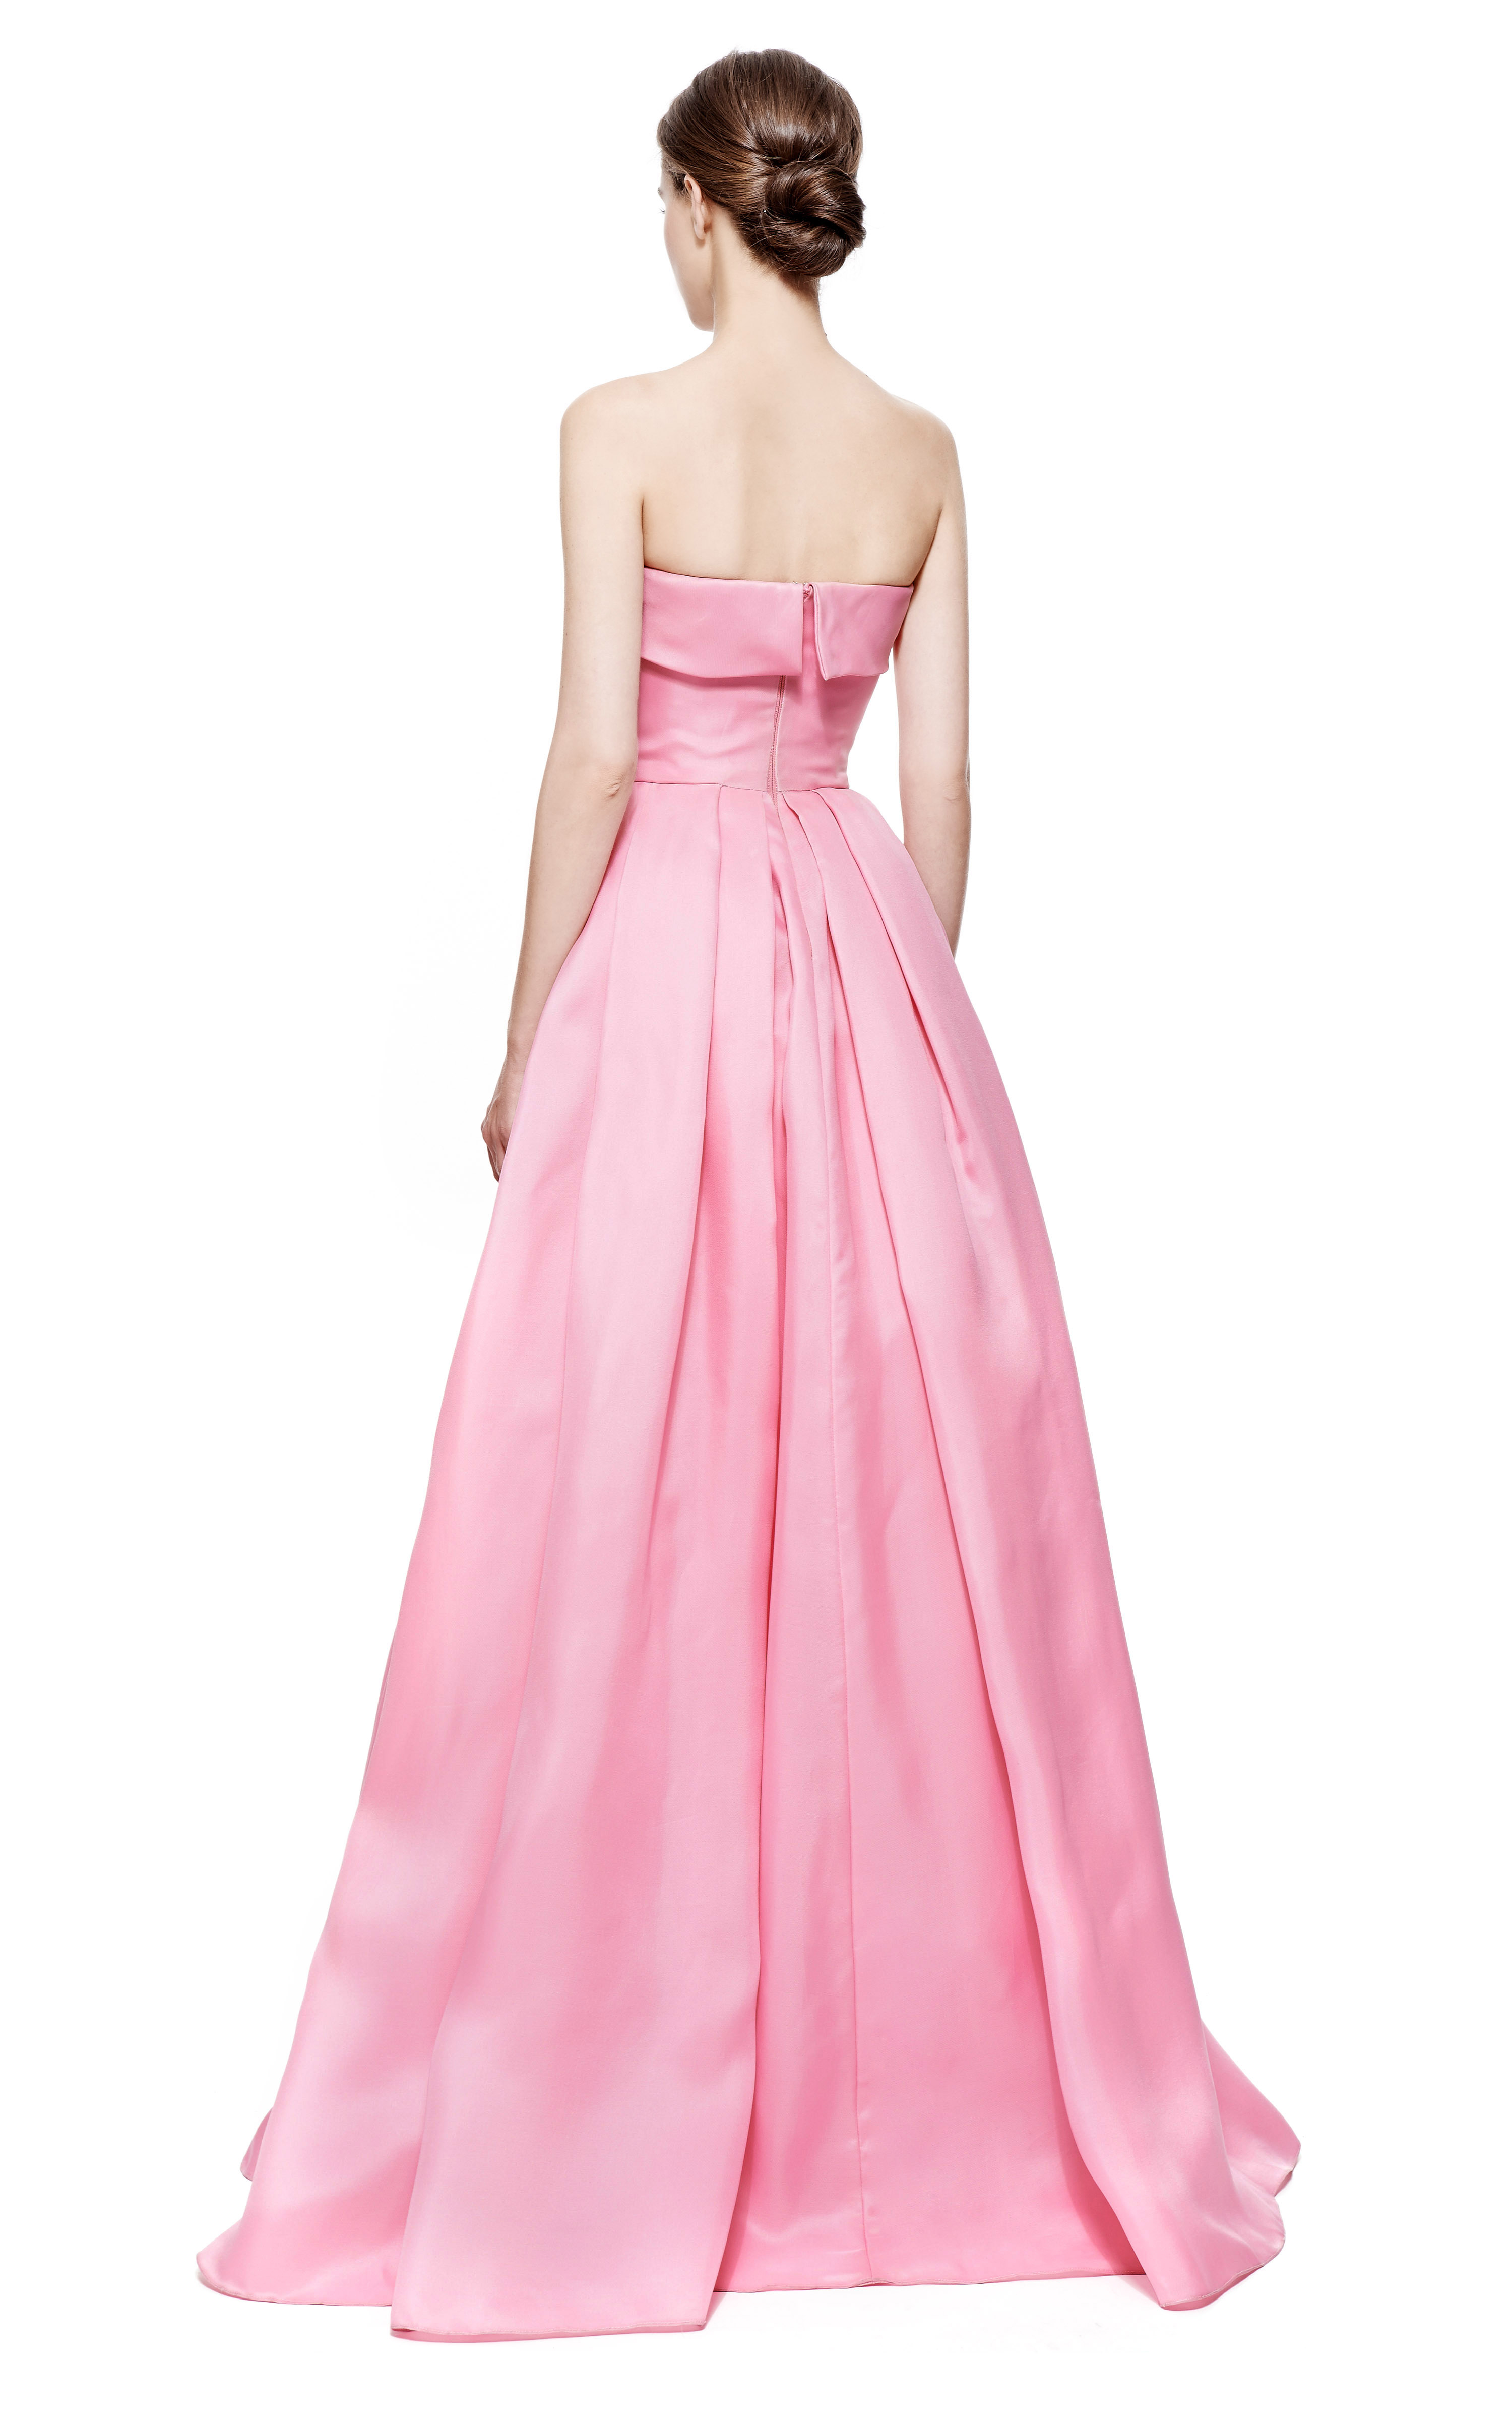 Lyst - Reem Acra Strapless Silk Gazar Pleated Ball Gown in Pink